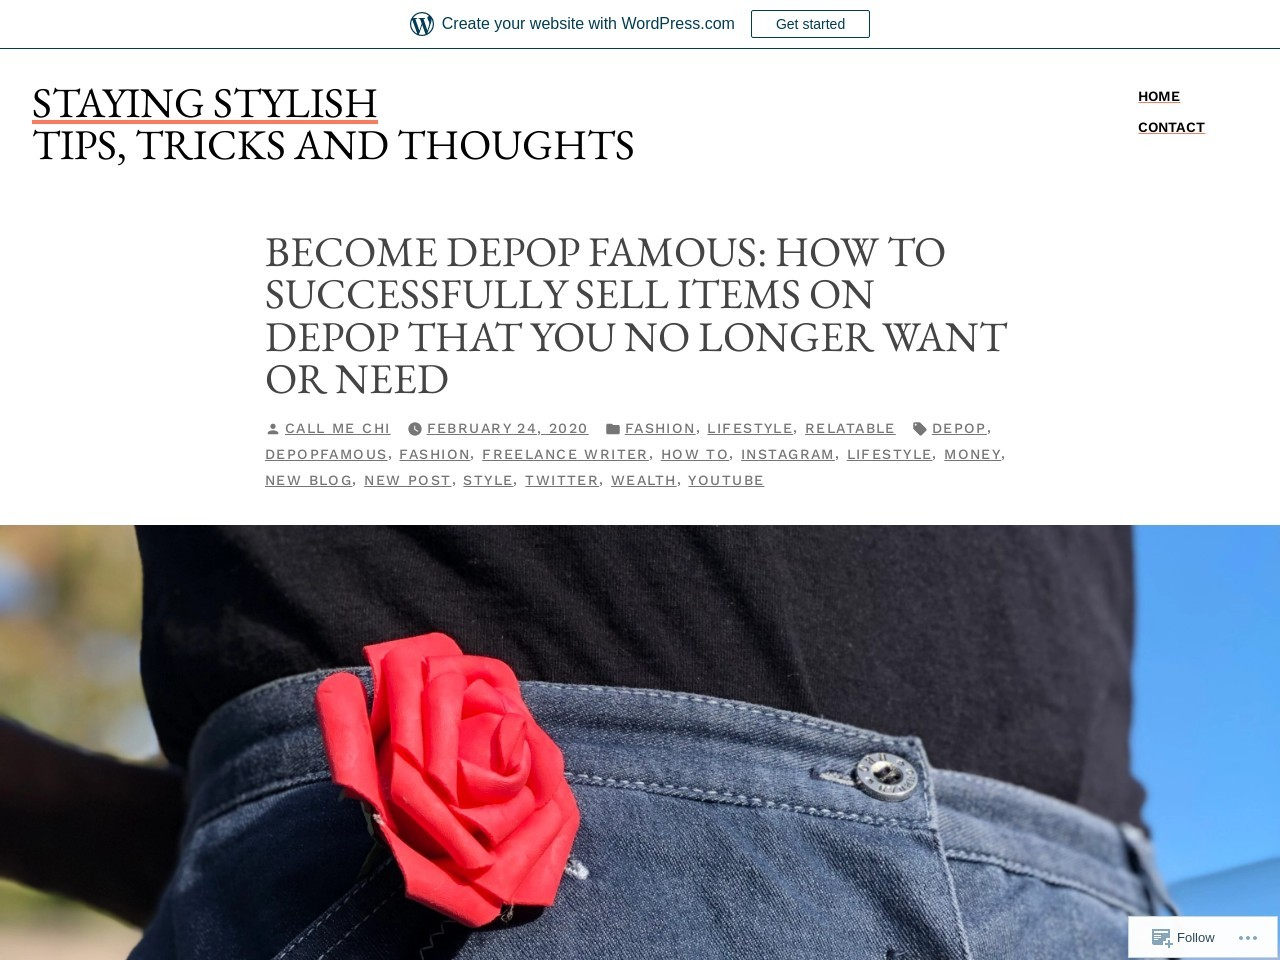 Become Depop Famous: How To Successfully Sell Items on Depop That You No Longer Want Or Need